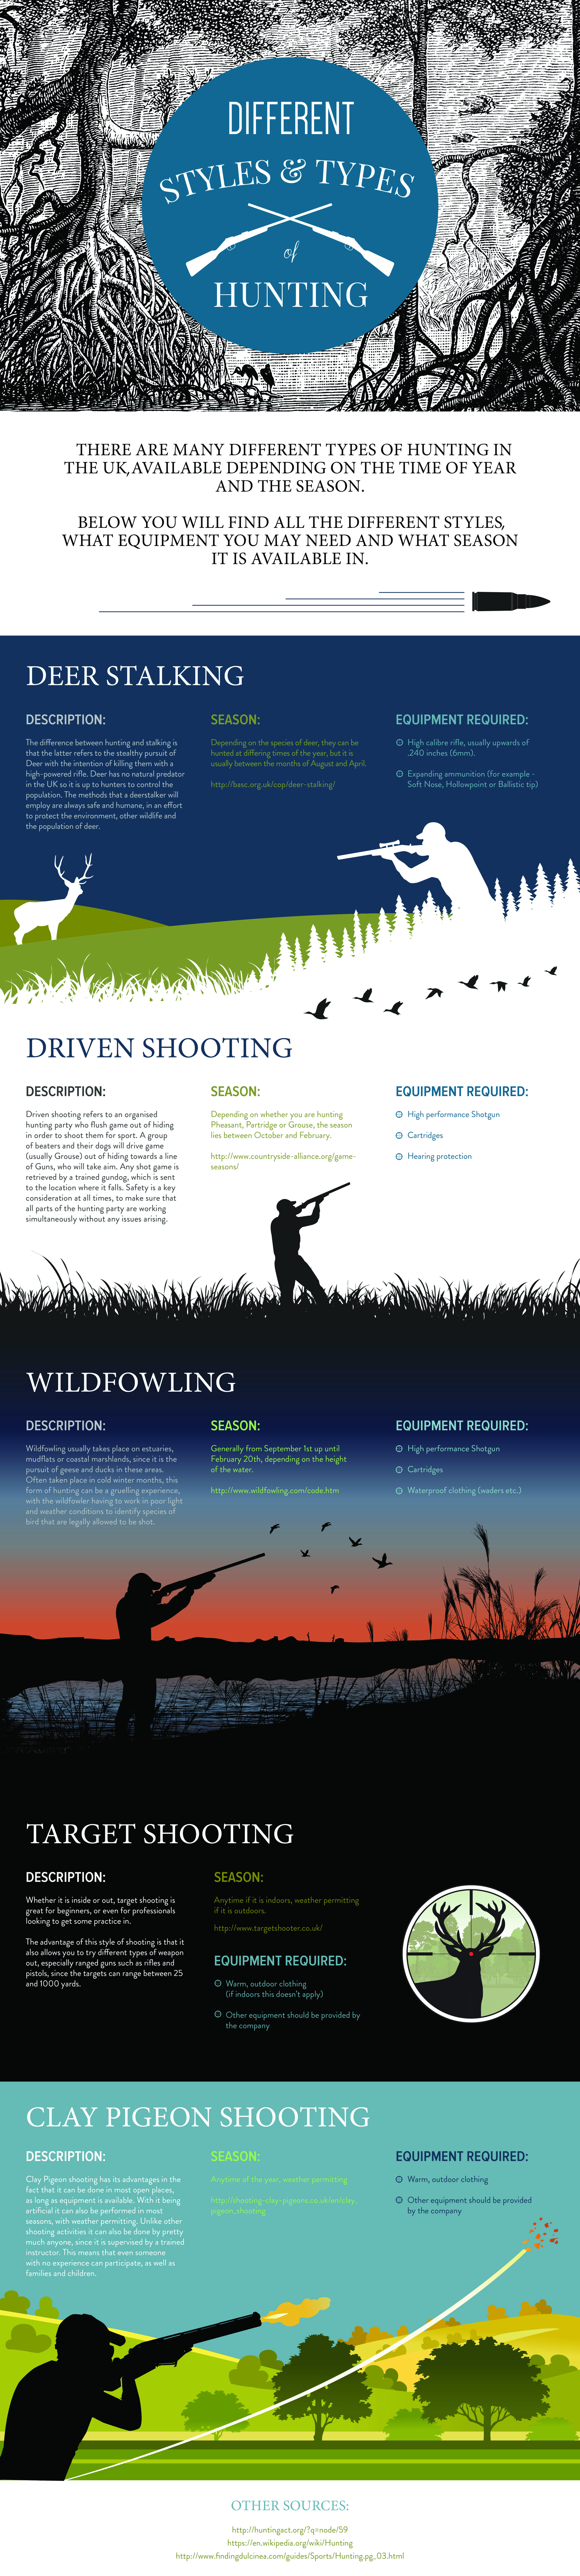 hunting and shooting types infographic